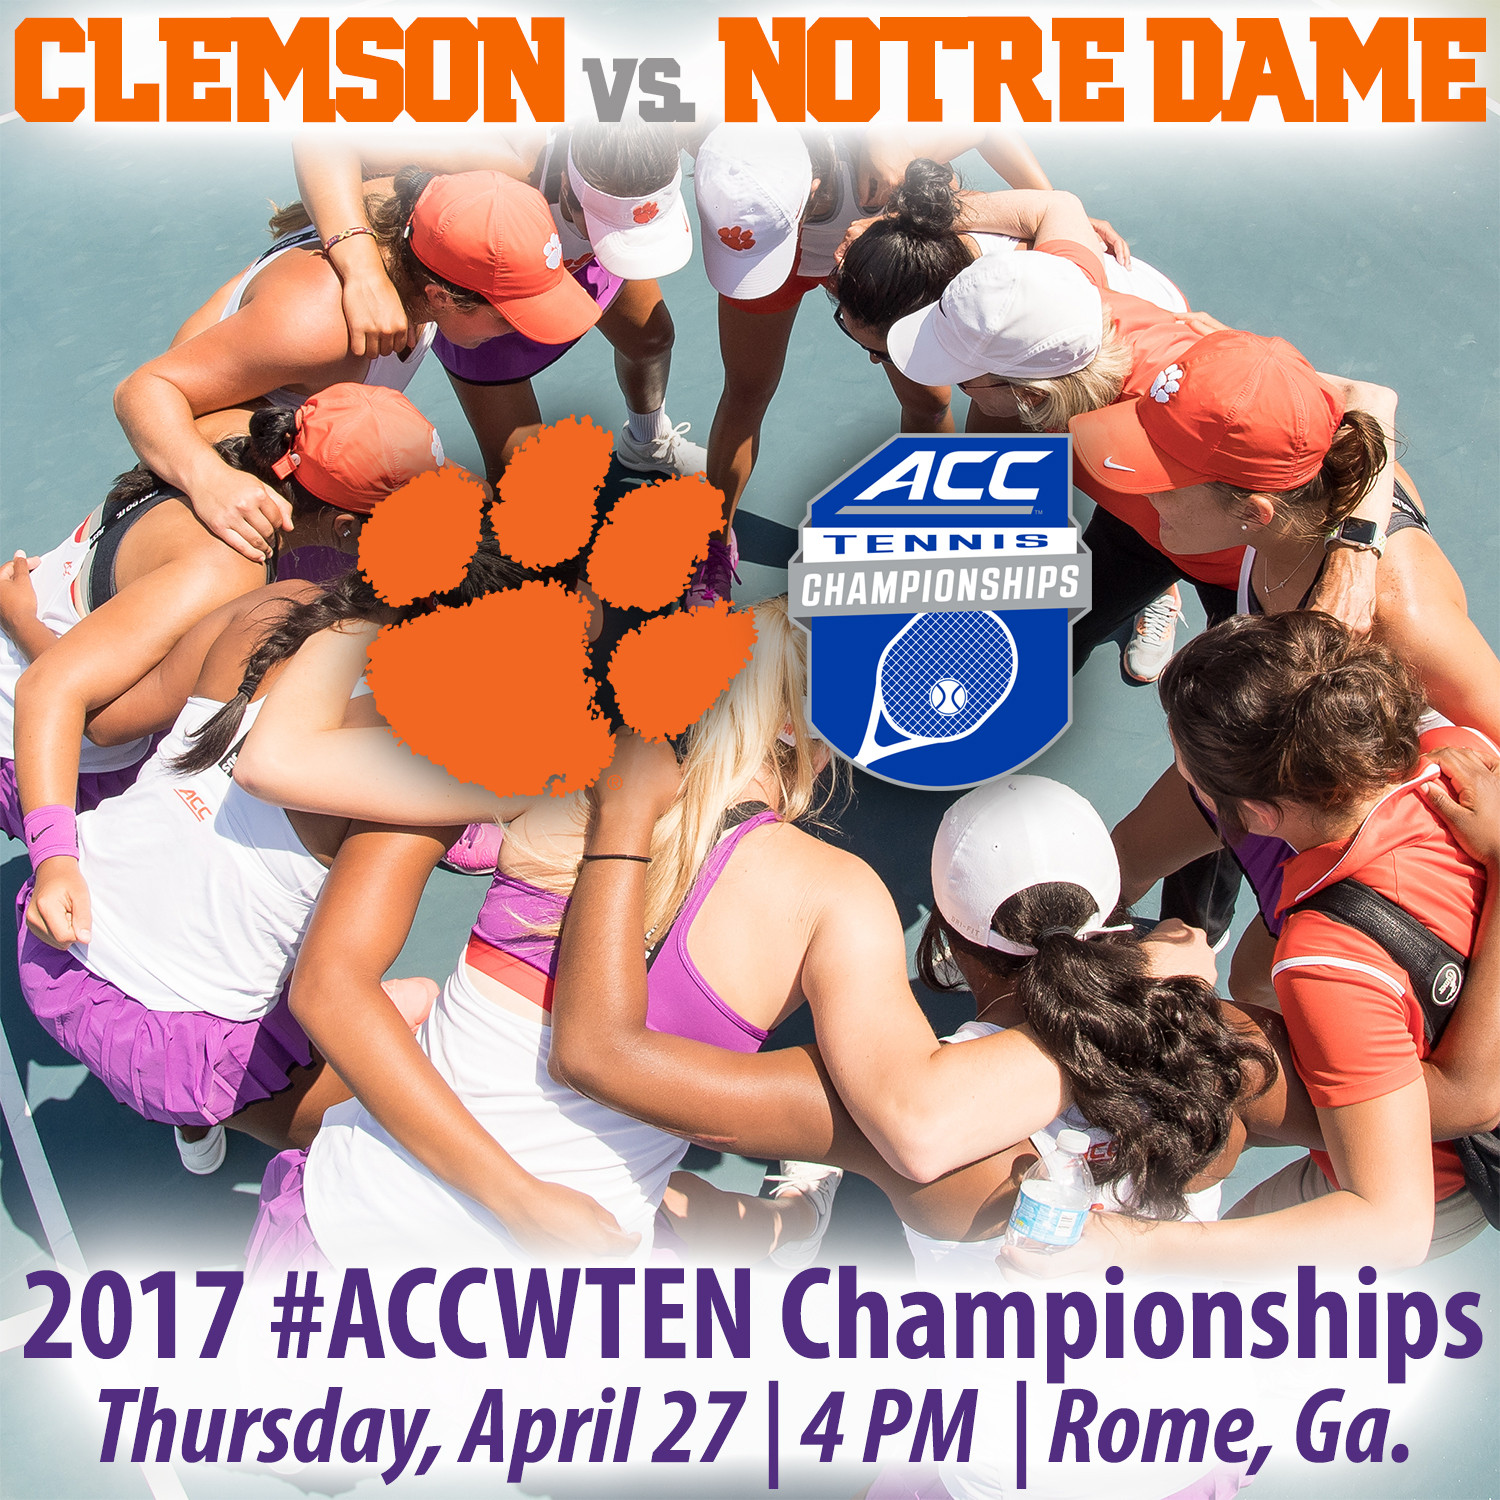 Tigers Face Notre Dame in ACC Championships Second Round Thursday